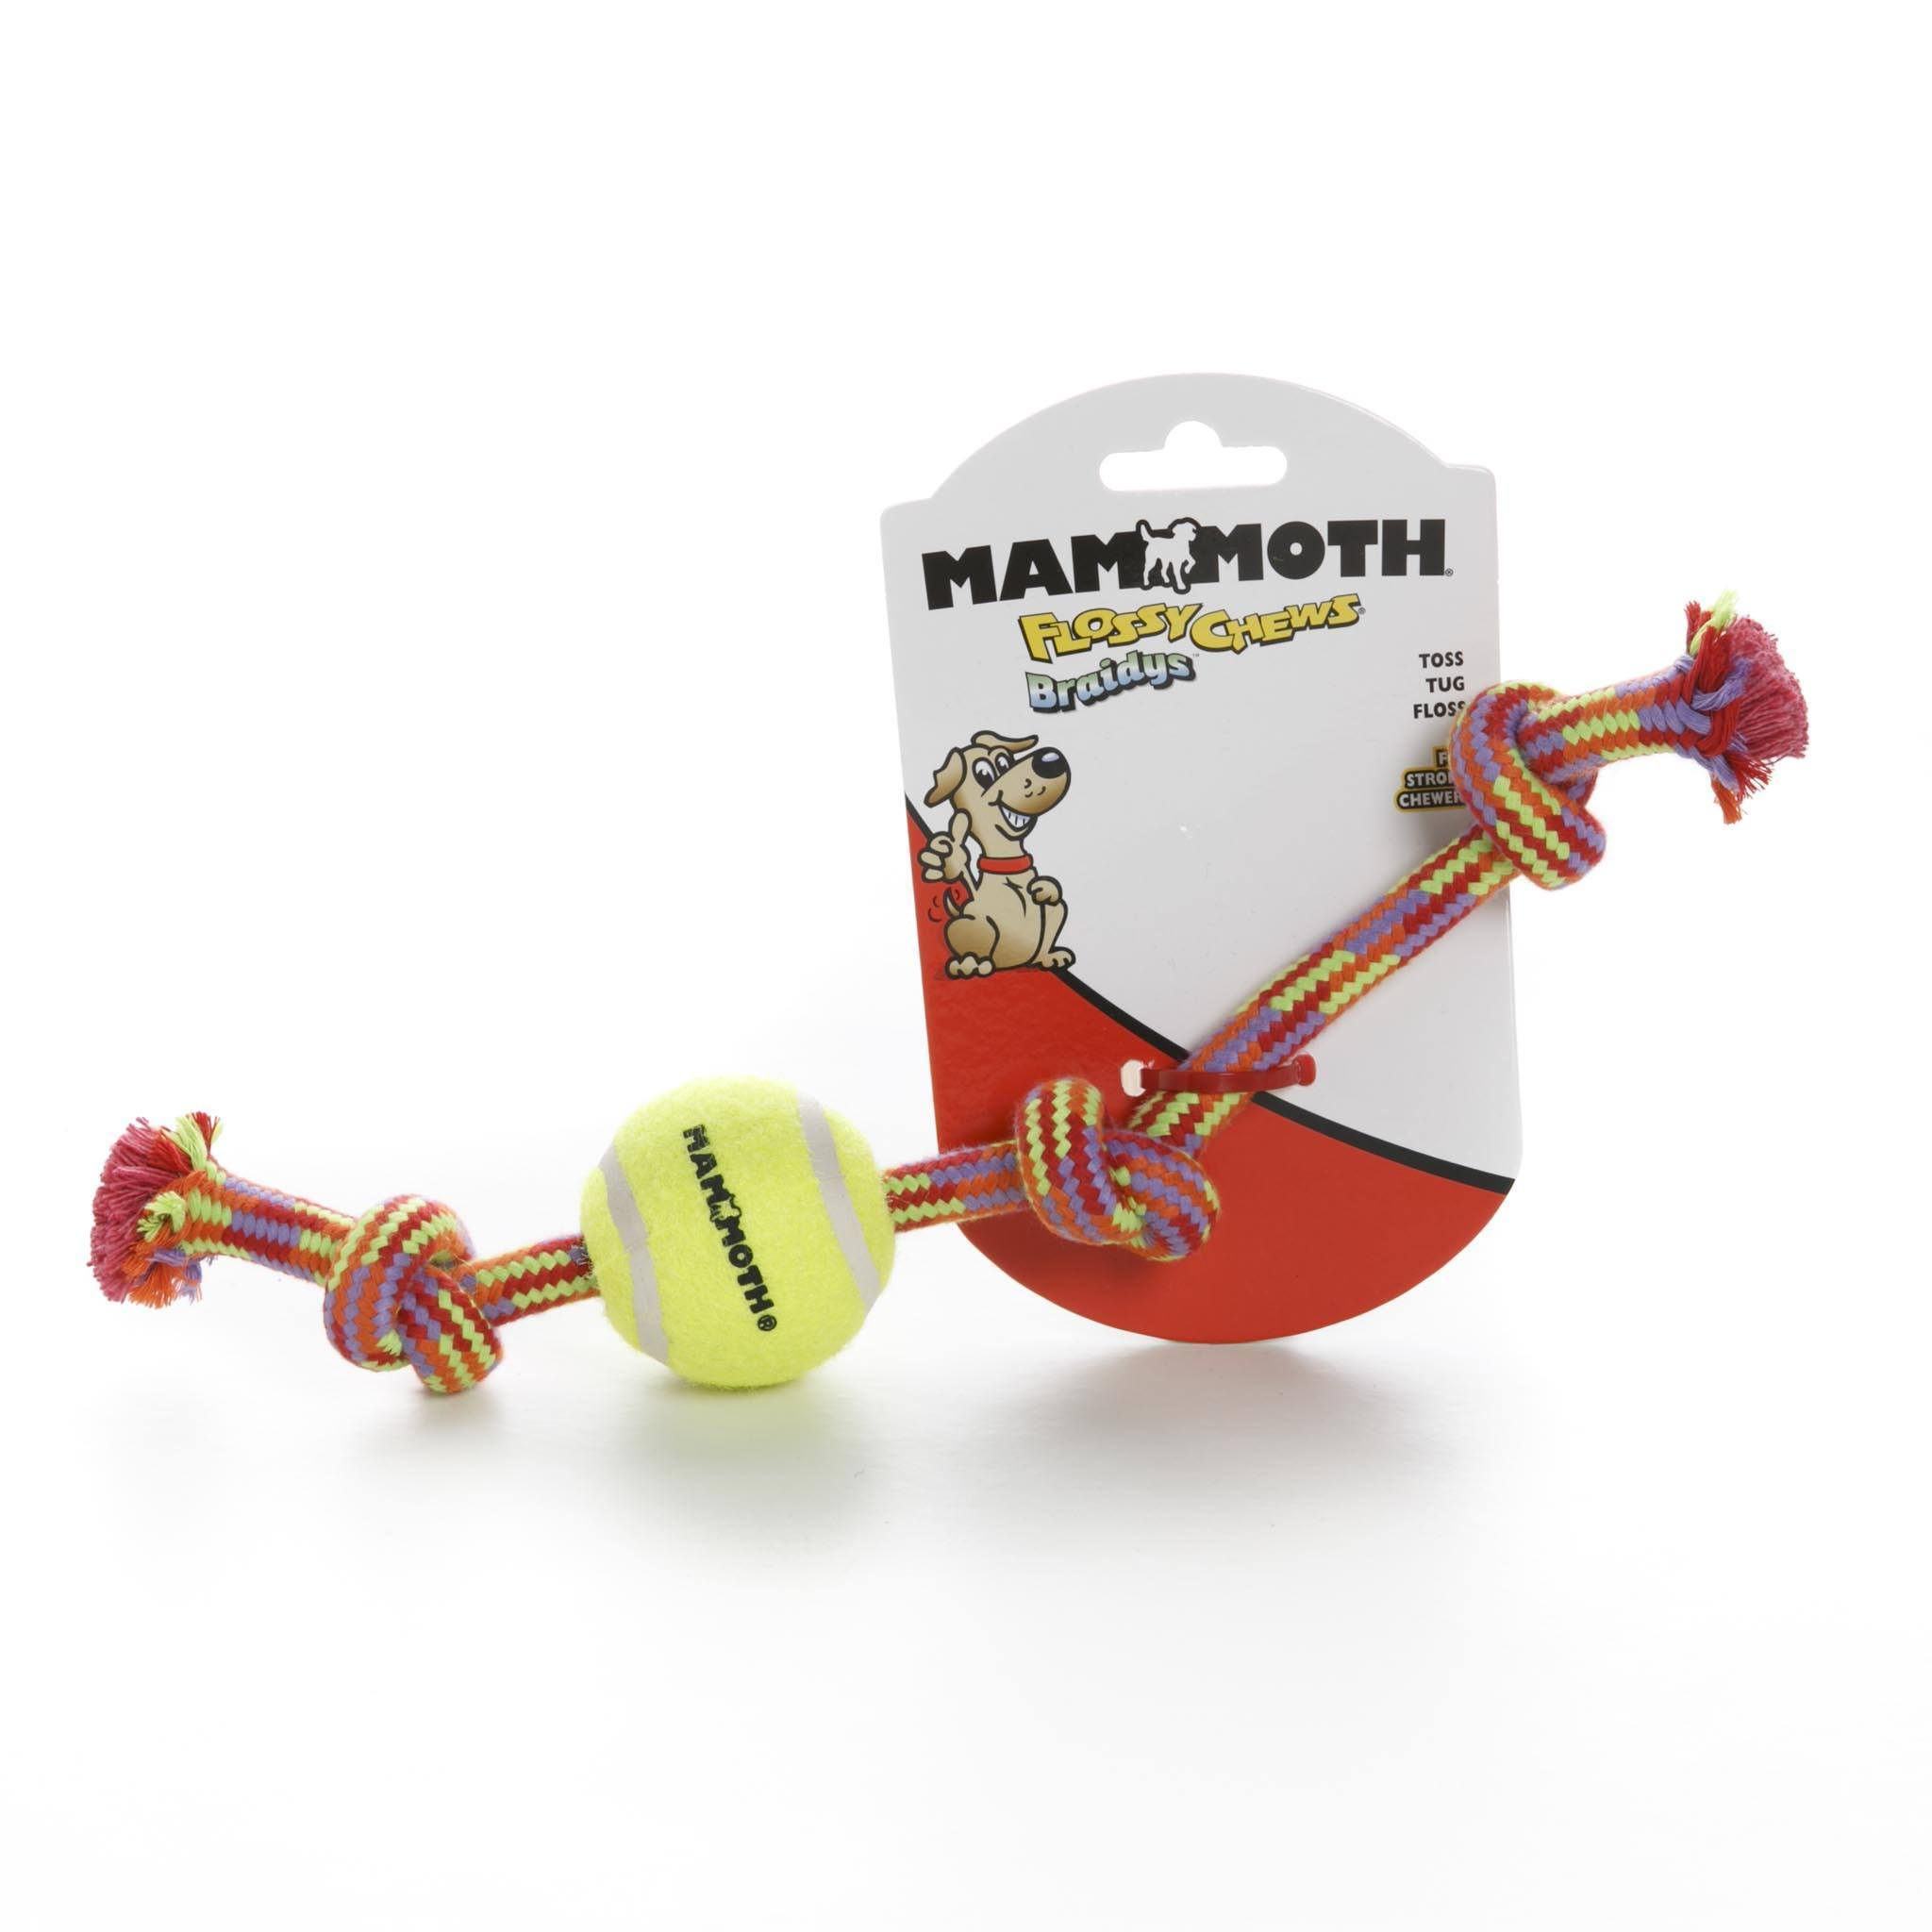 2048x2048 Mammoth Rope Toy